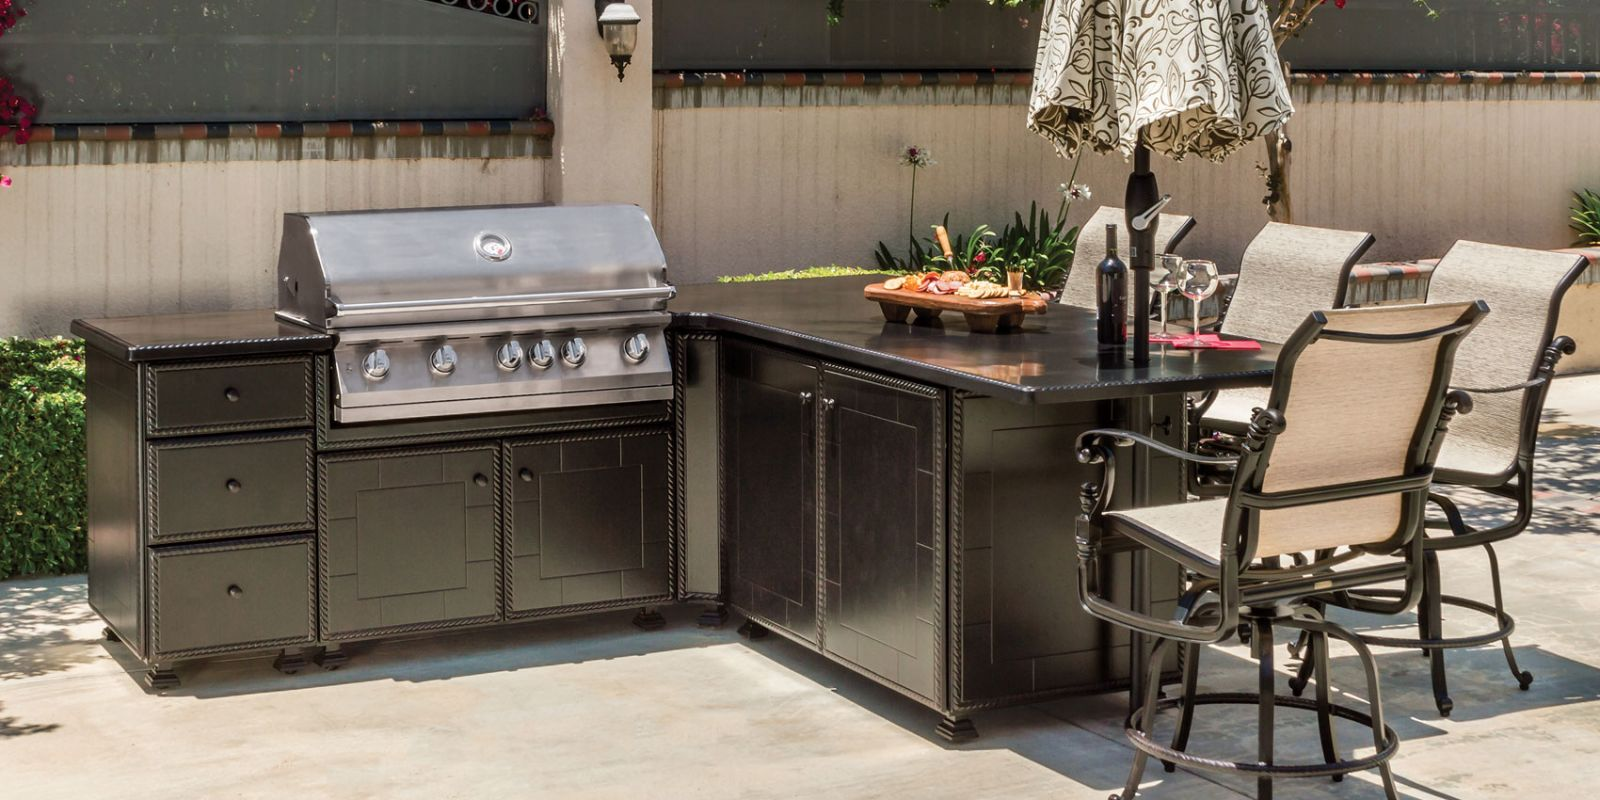 Outdoor Patio Design Specialist | American Casual Living on Porch & Patio Casual Living id=27922